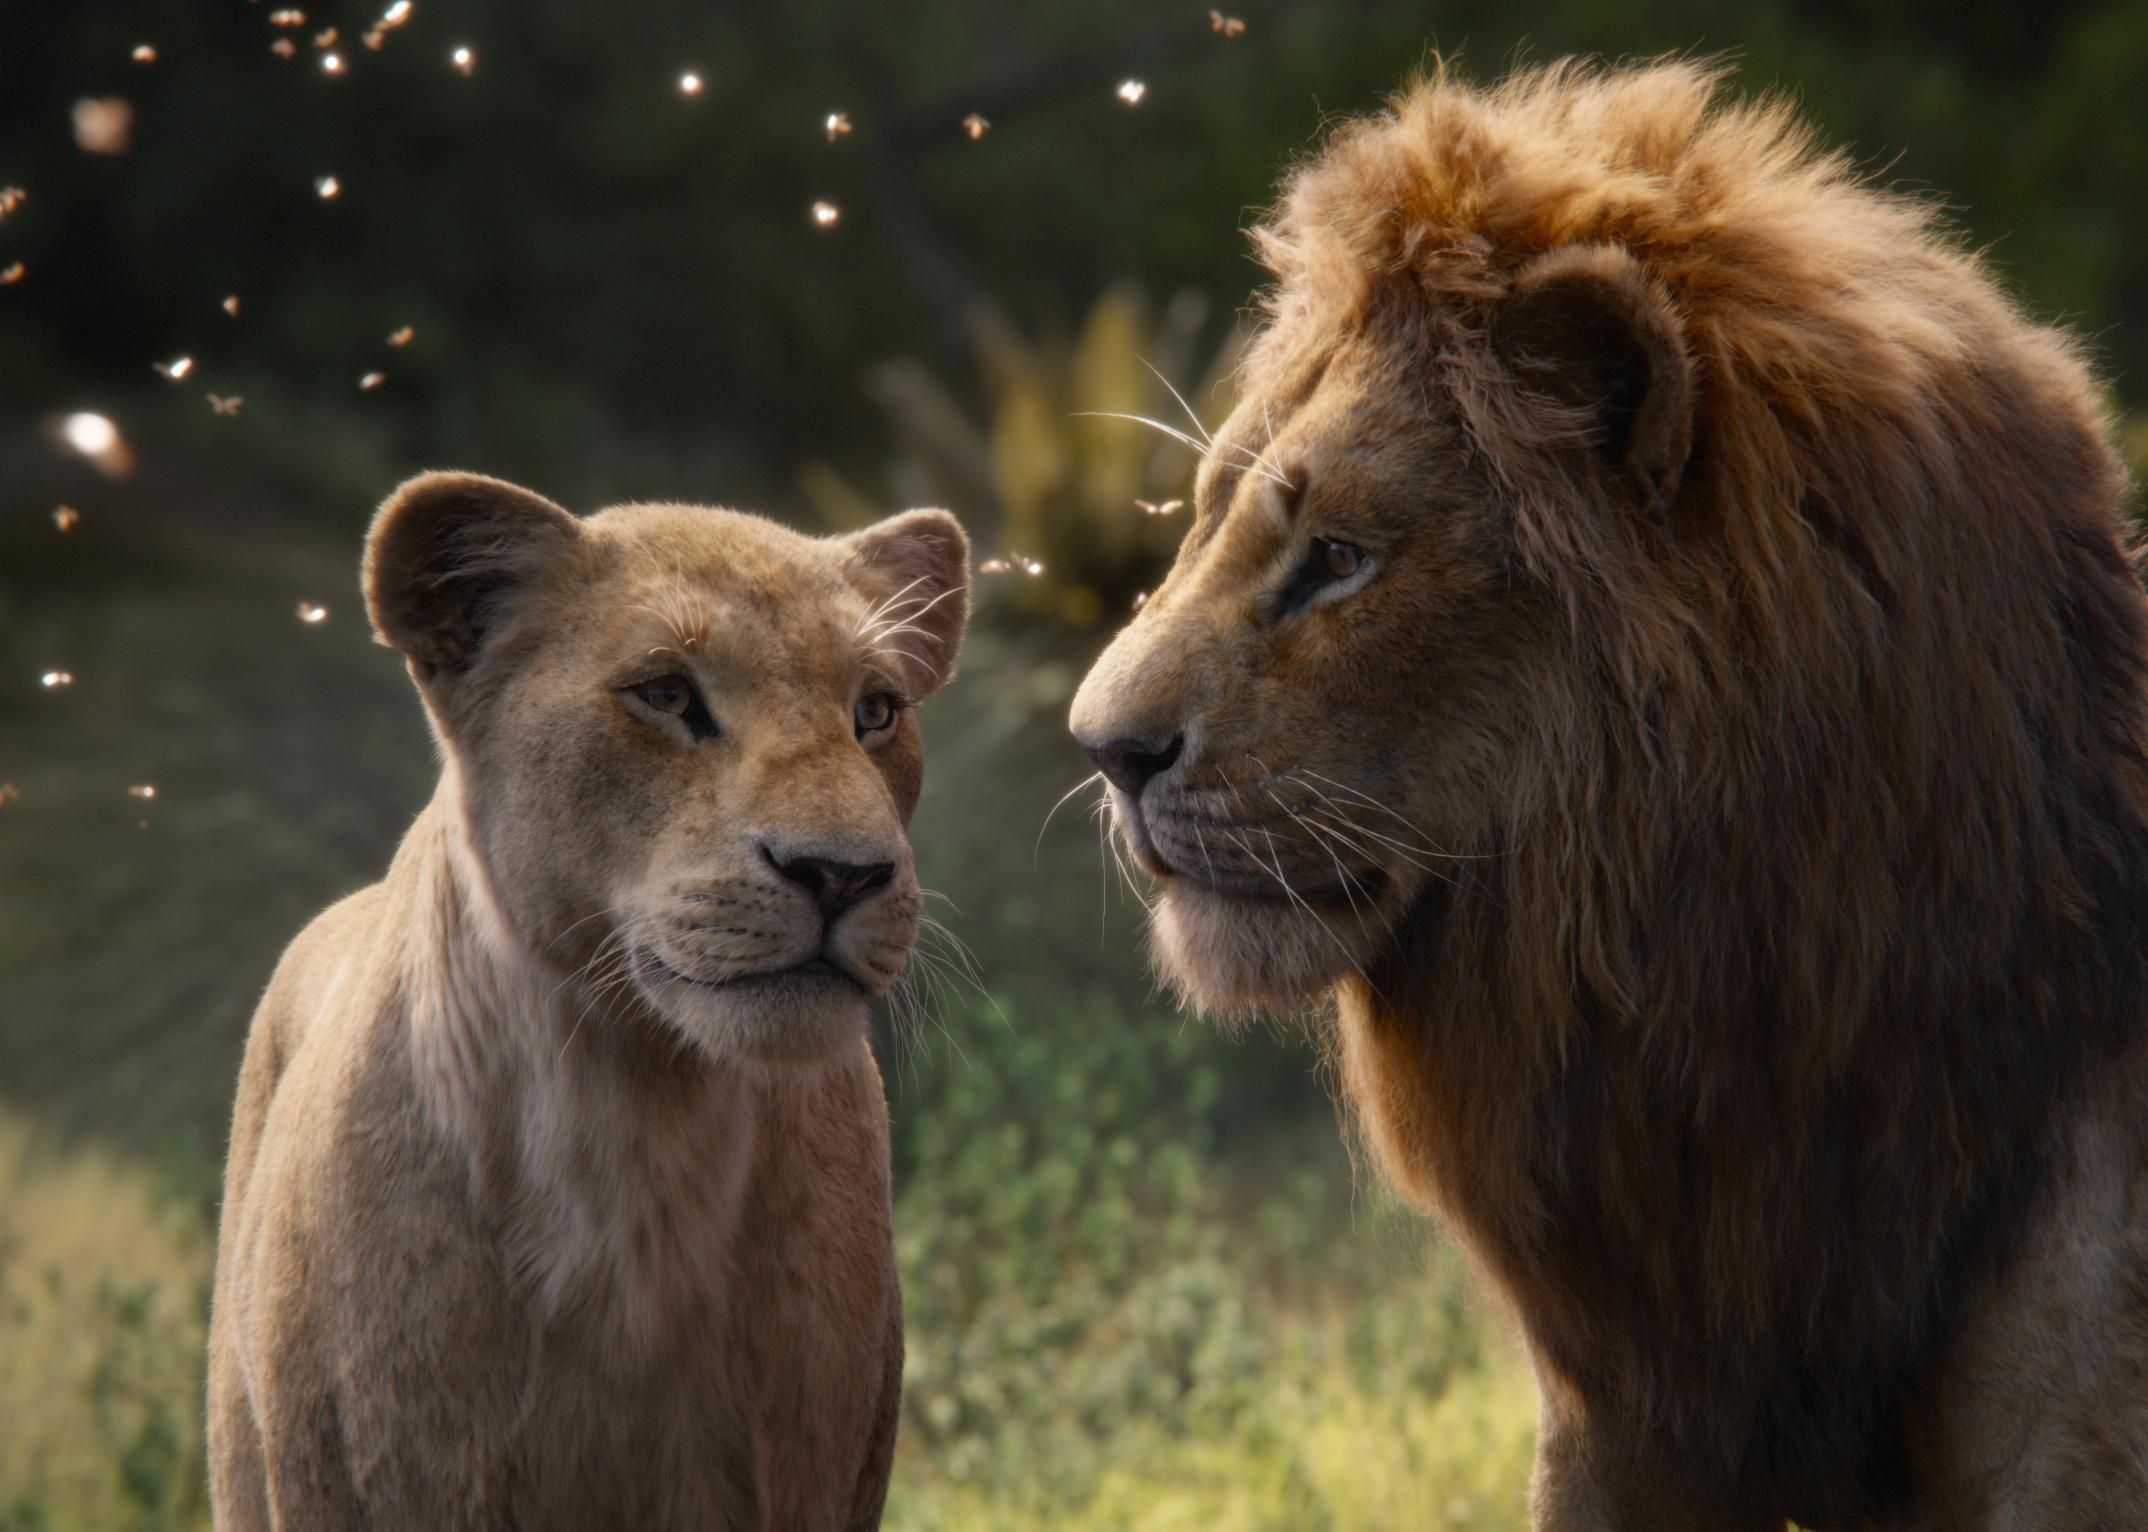 The Lion King: Jon Favreau's Photo